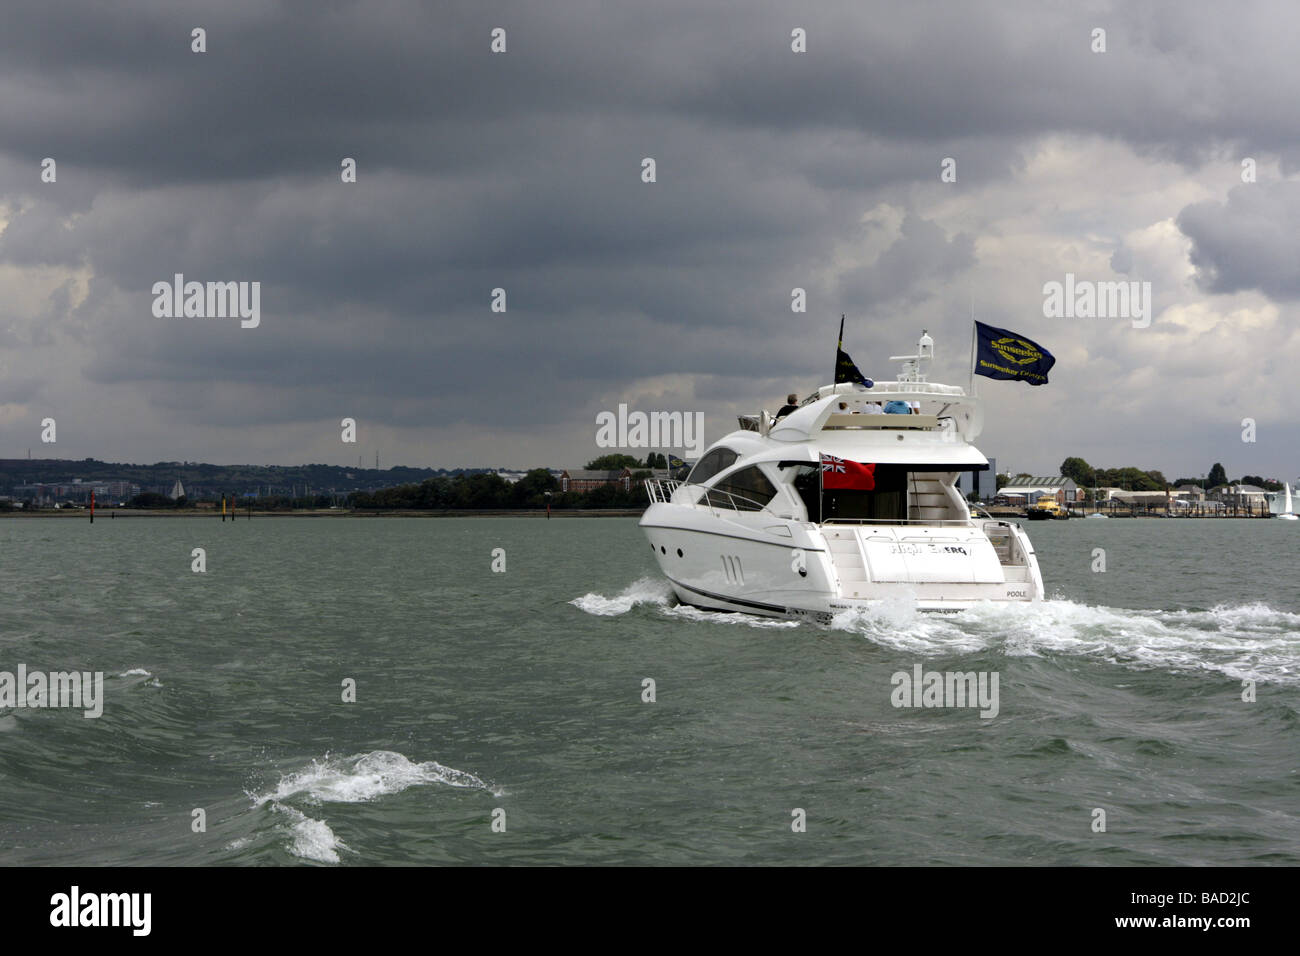 A fast powerboat entering dark and stormy waters in Portsmouth harbour - Stock Image